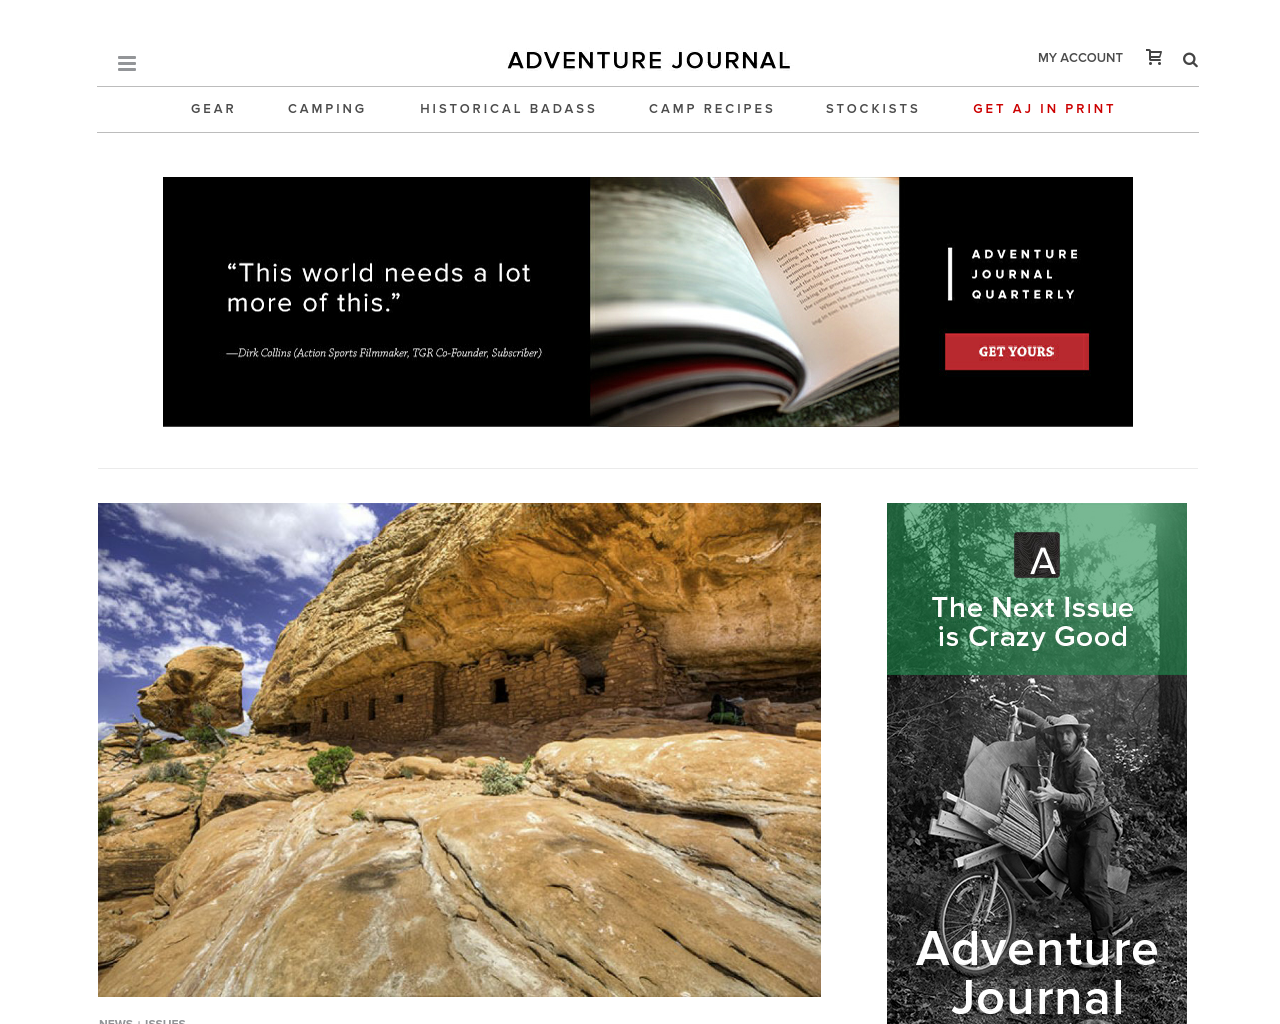 Adventure-Journal-Advertising-Reviews-Pricing